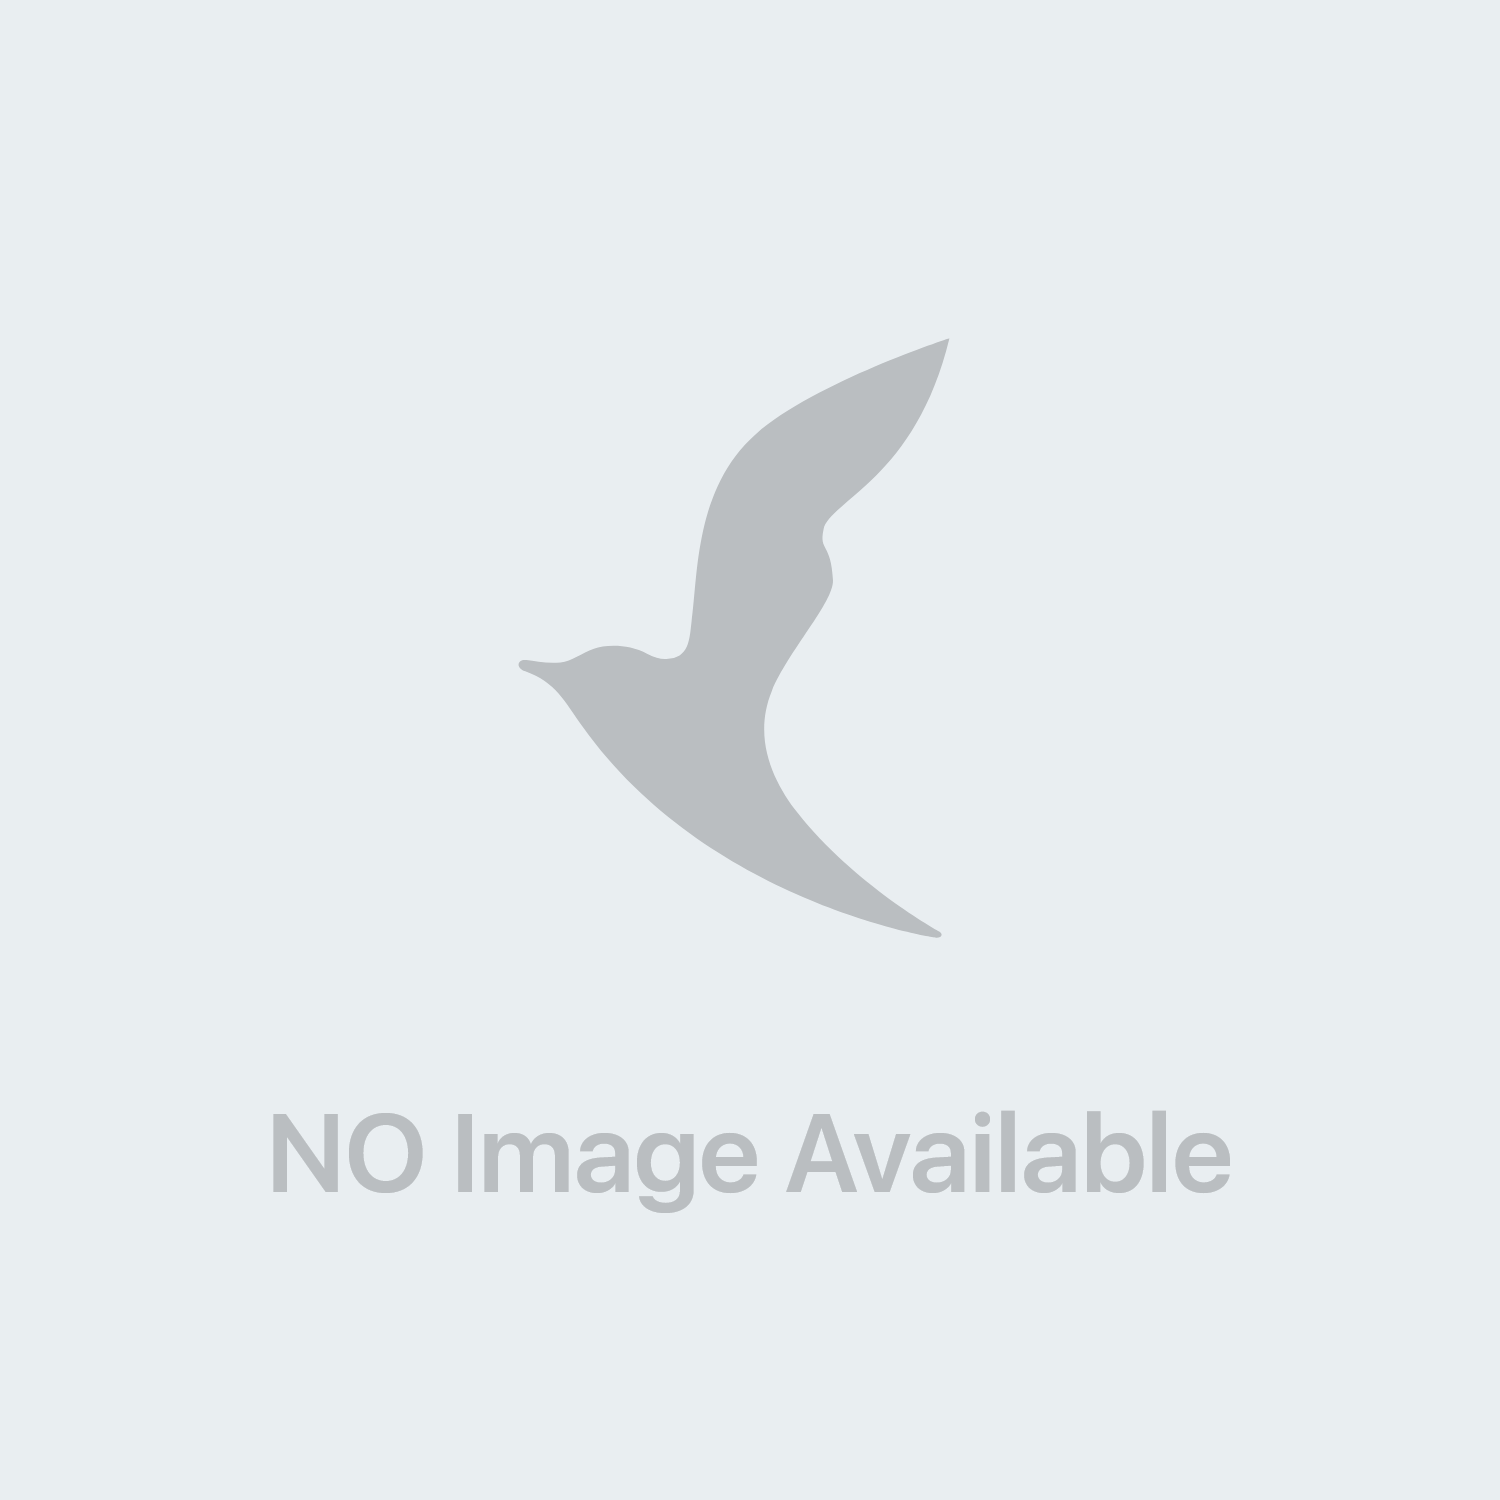 Erba Vita Aloe Vera Aroma Mirtillo Integratore Depurativo 500 Ml